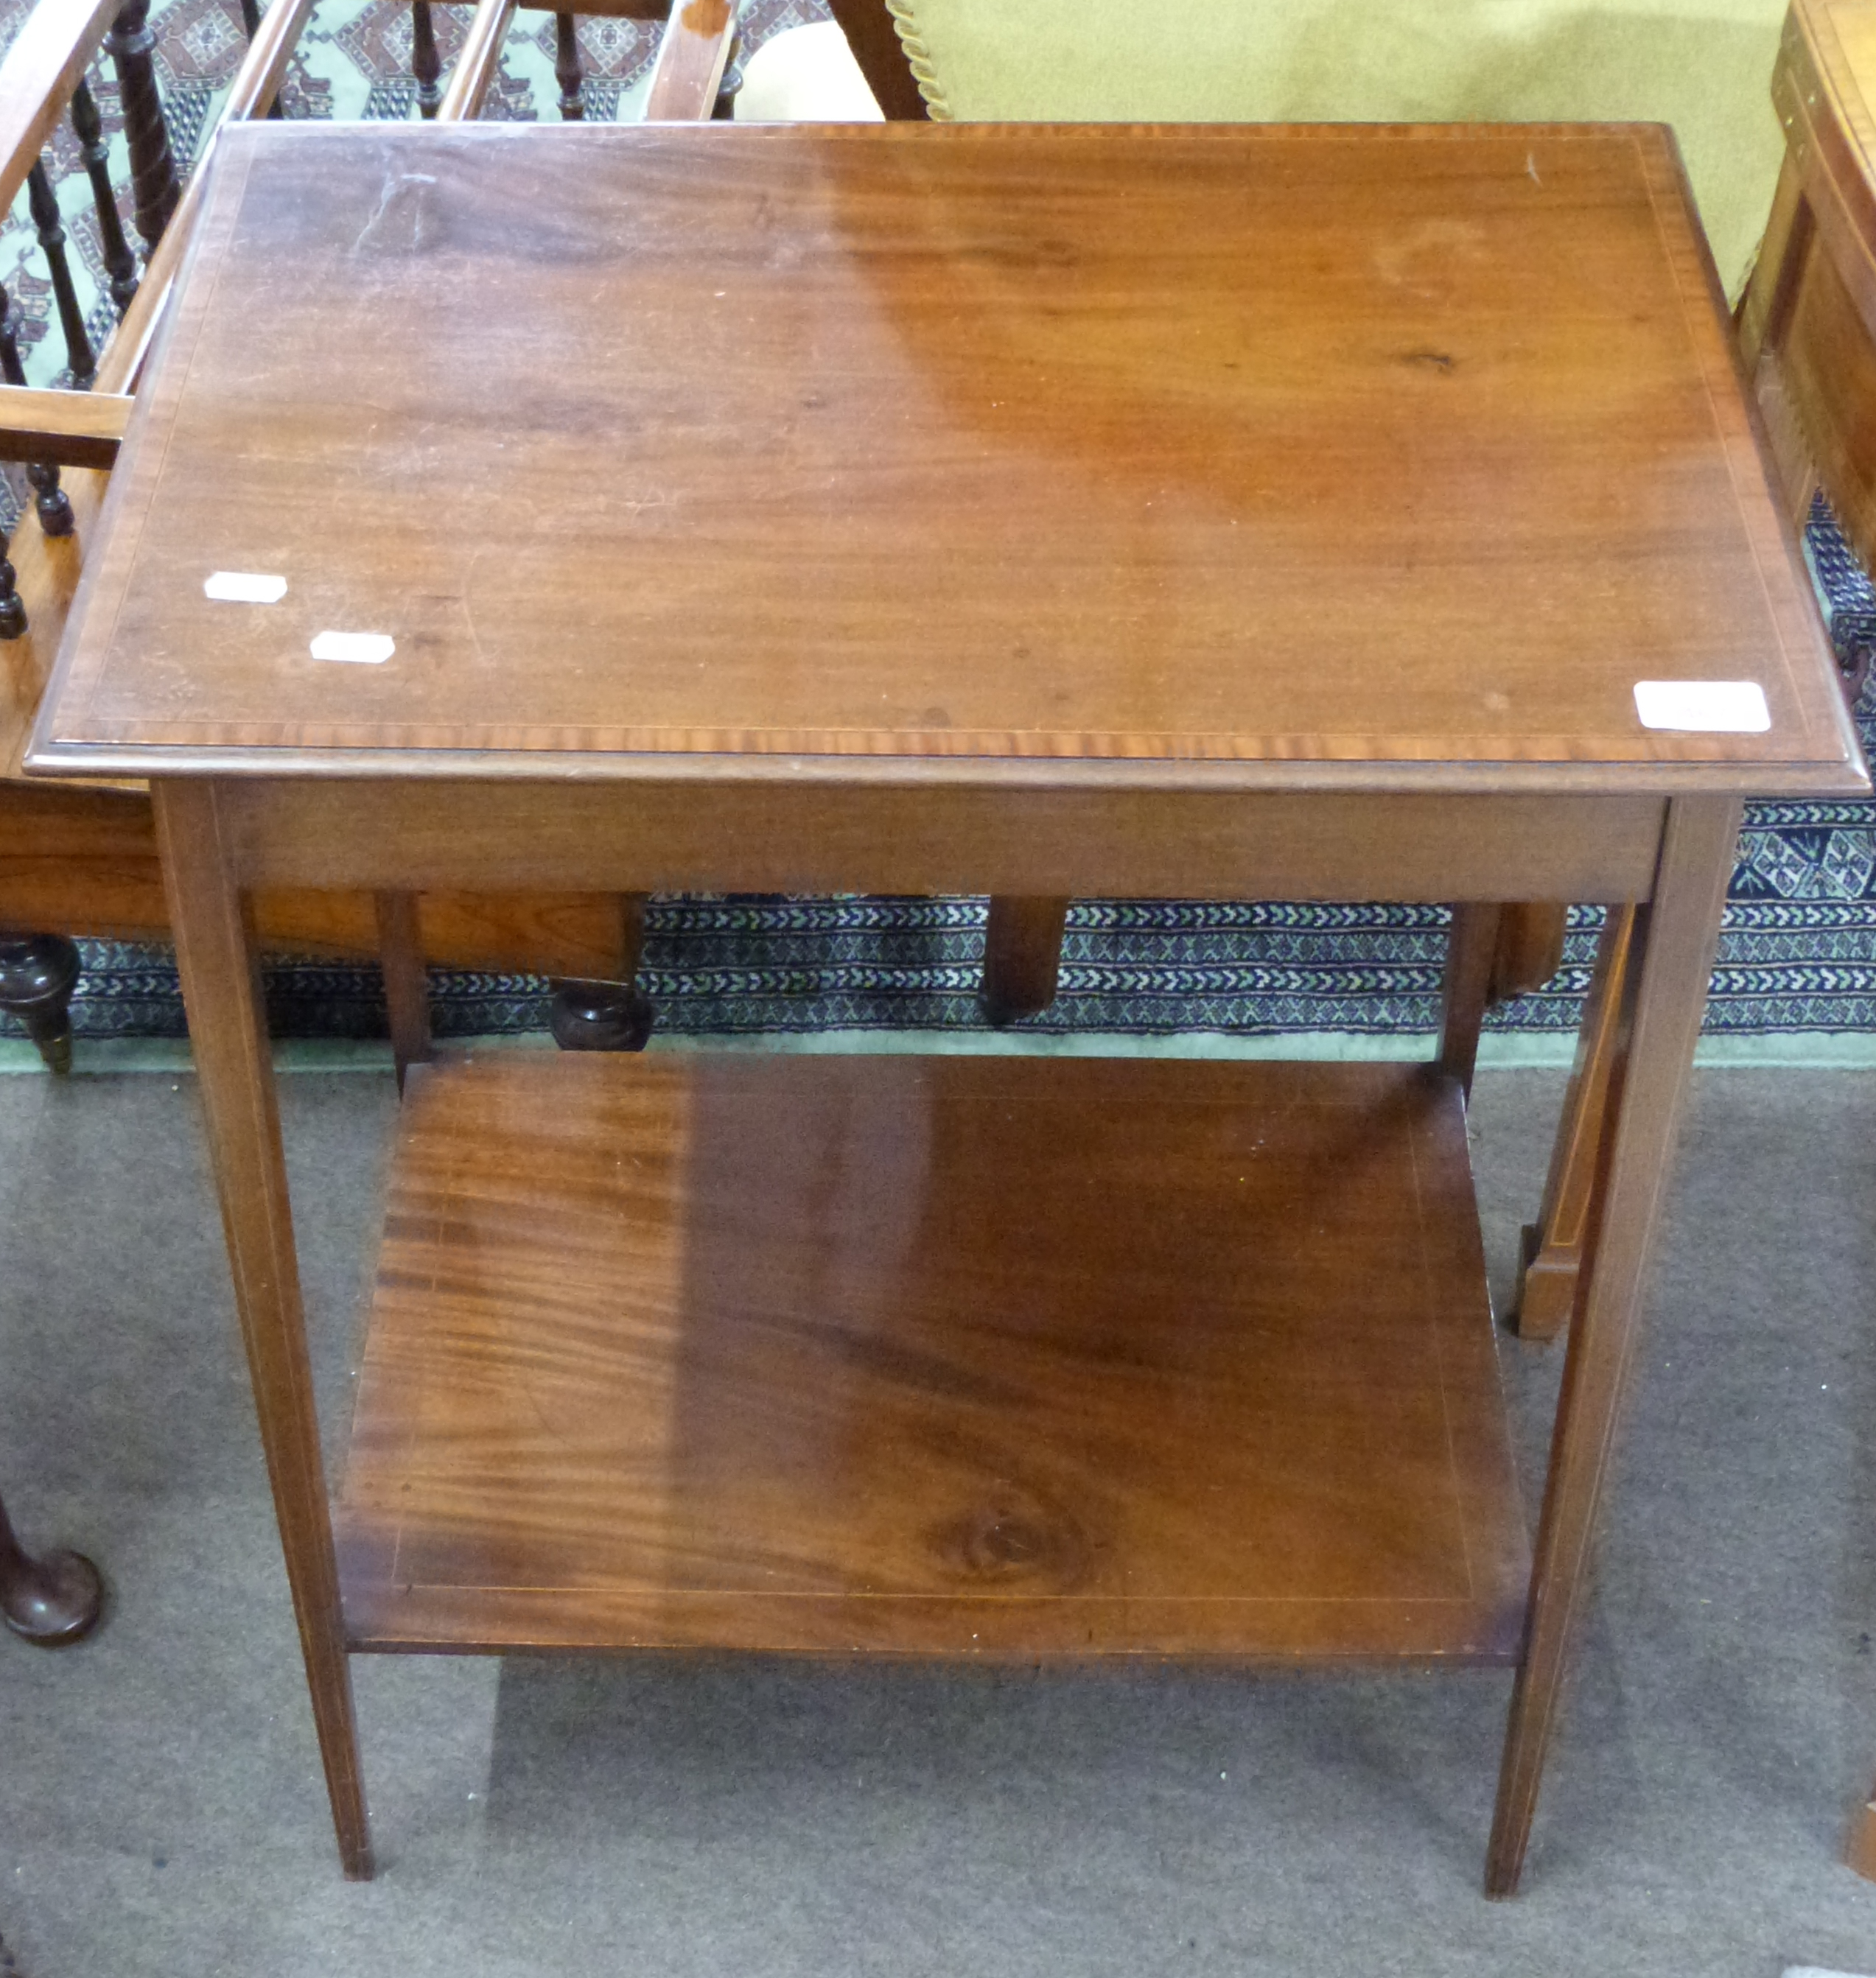 Small mahogany side table with strung and cross banded decoration, approx 56 x 37cm